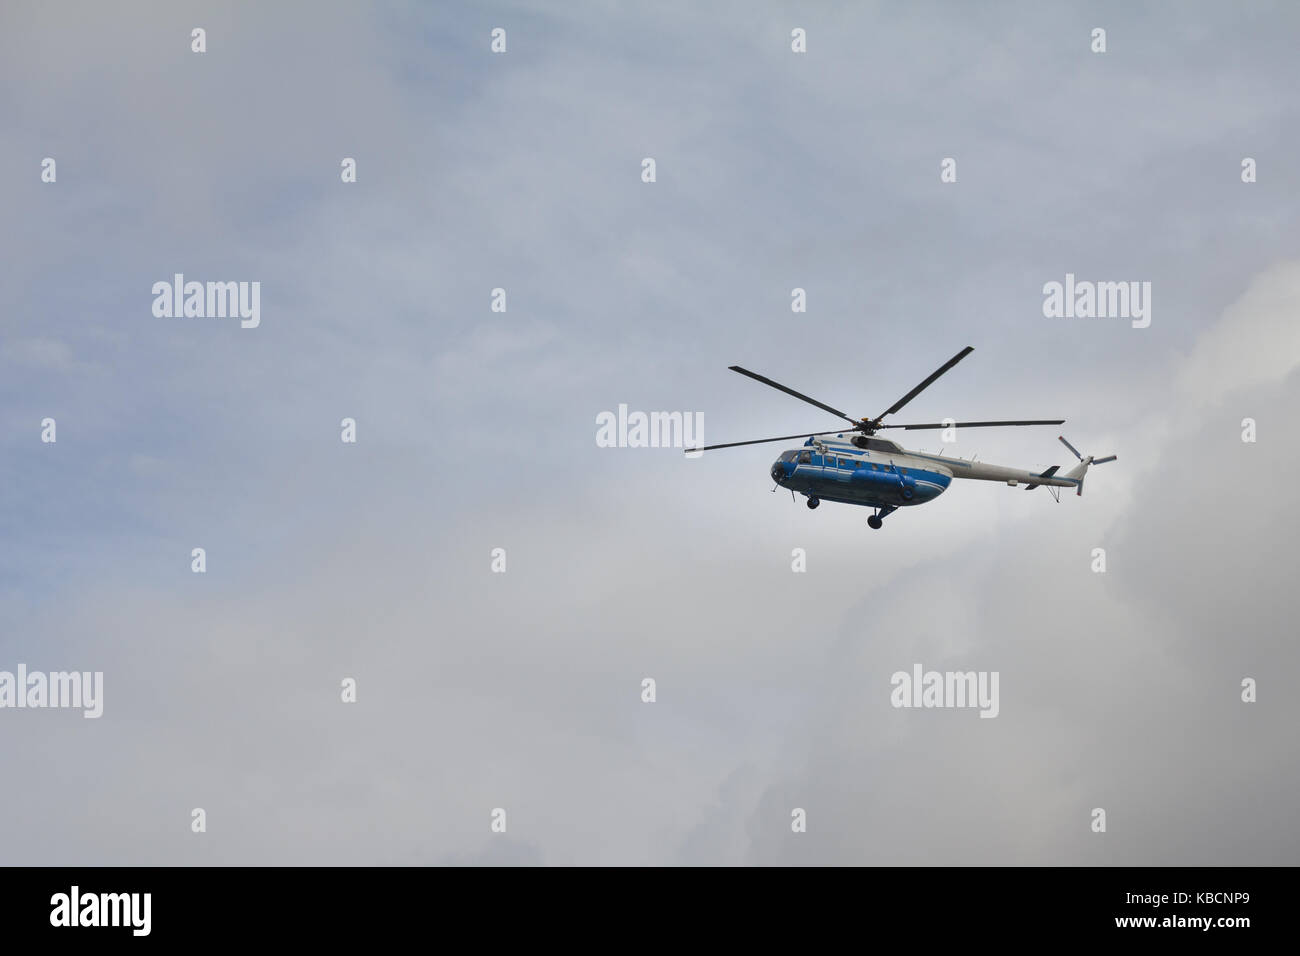 Civil helicopter in cloudy sky - Stock Image